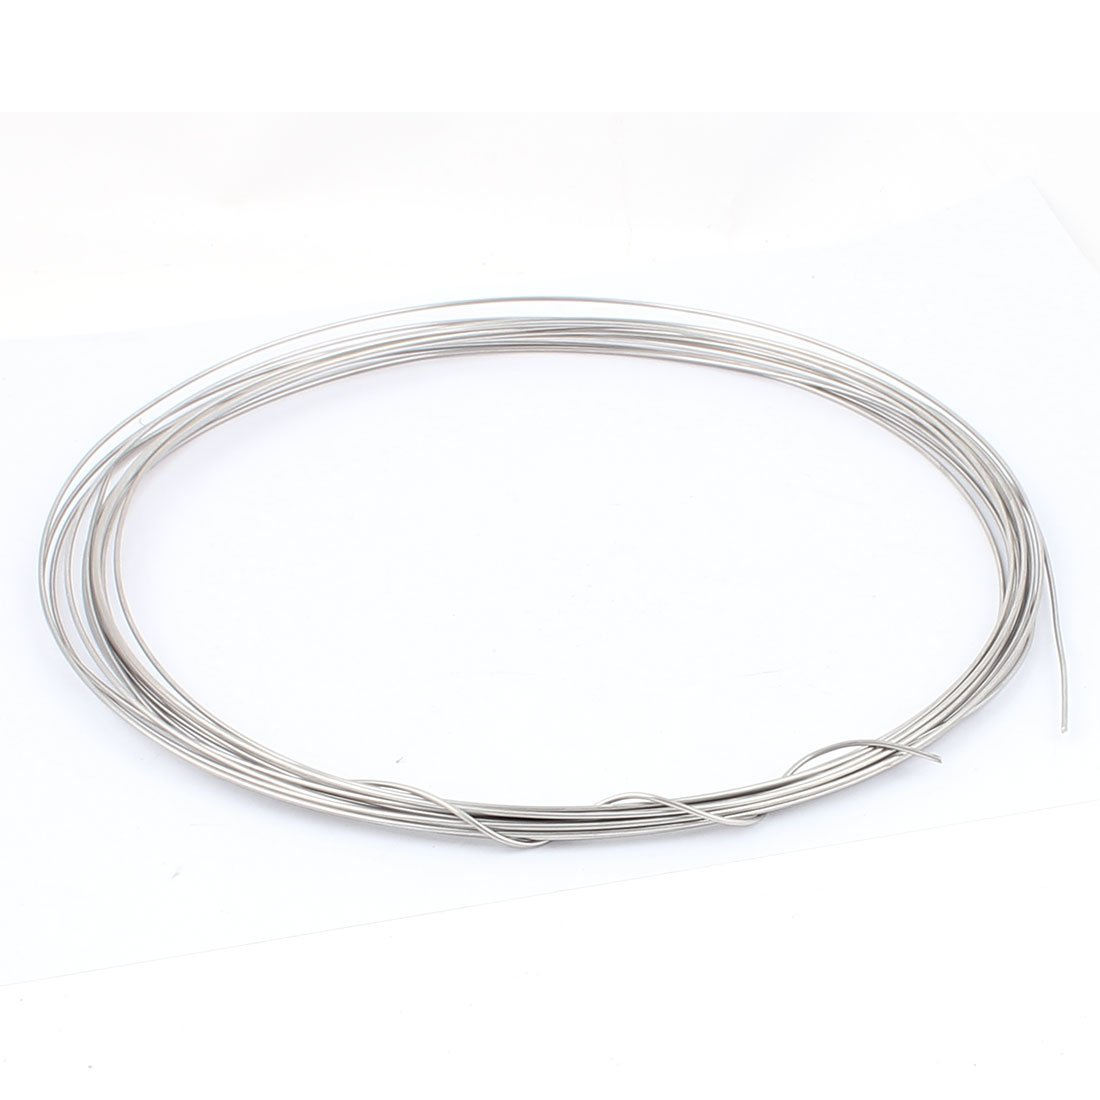 10m Long Nichrome Heating Element 17AWG 1.2mm Dia Heater Wire Coil